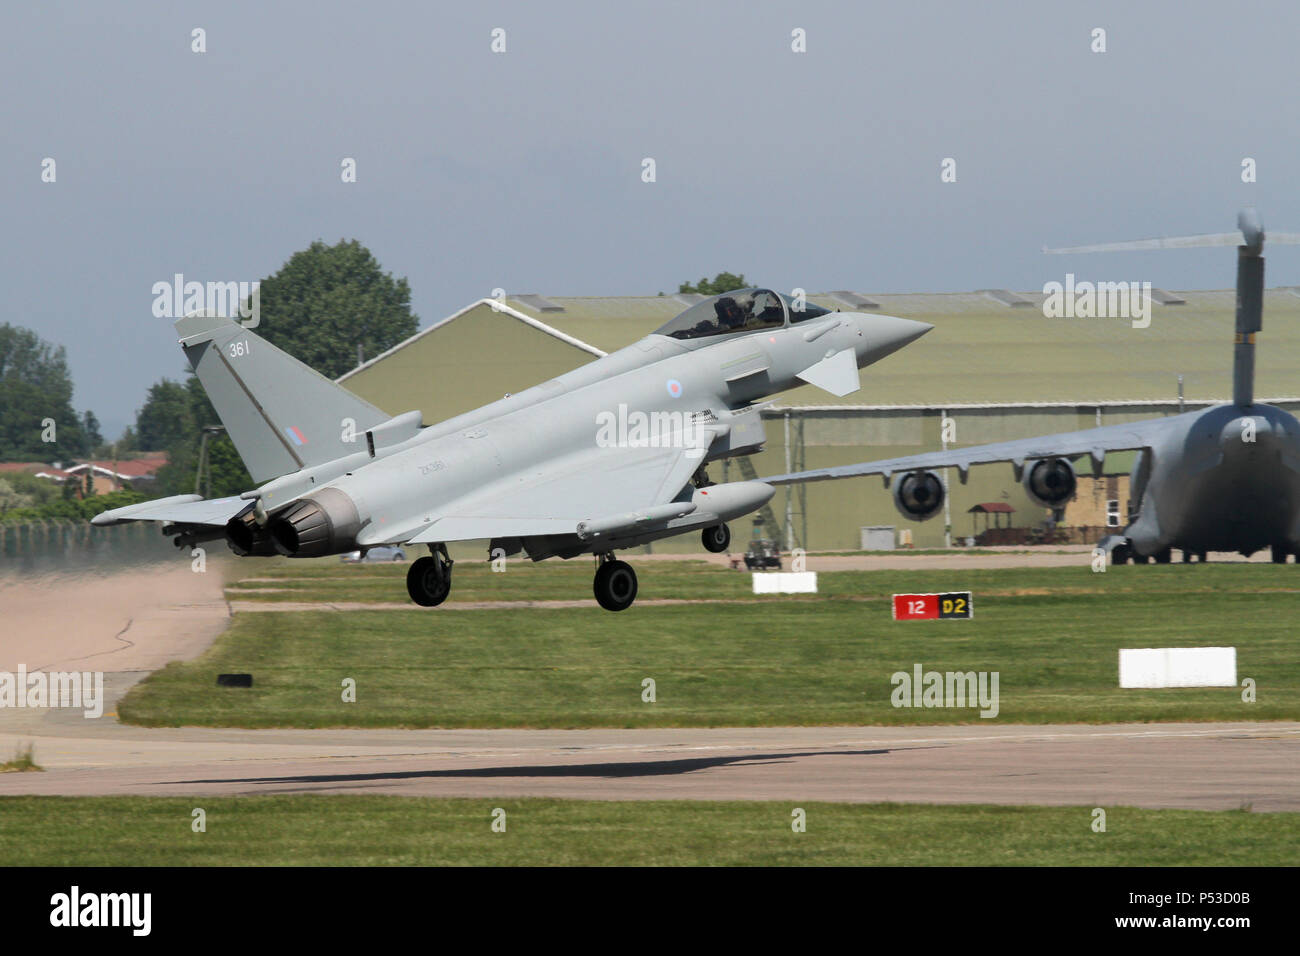 Royal Air Force Typhoon FGR4 over the runway and about to land at RAF Coningsby, it's home base. Note the USAF C-17 transport parked behind. - Stock Image